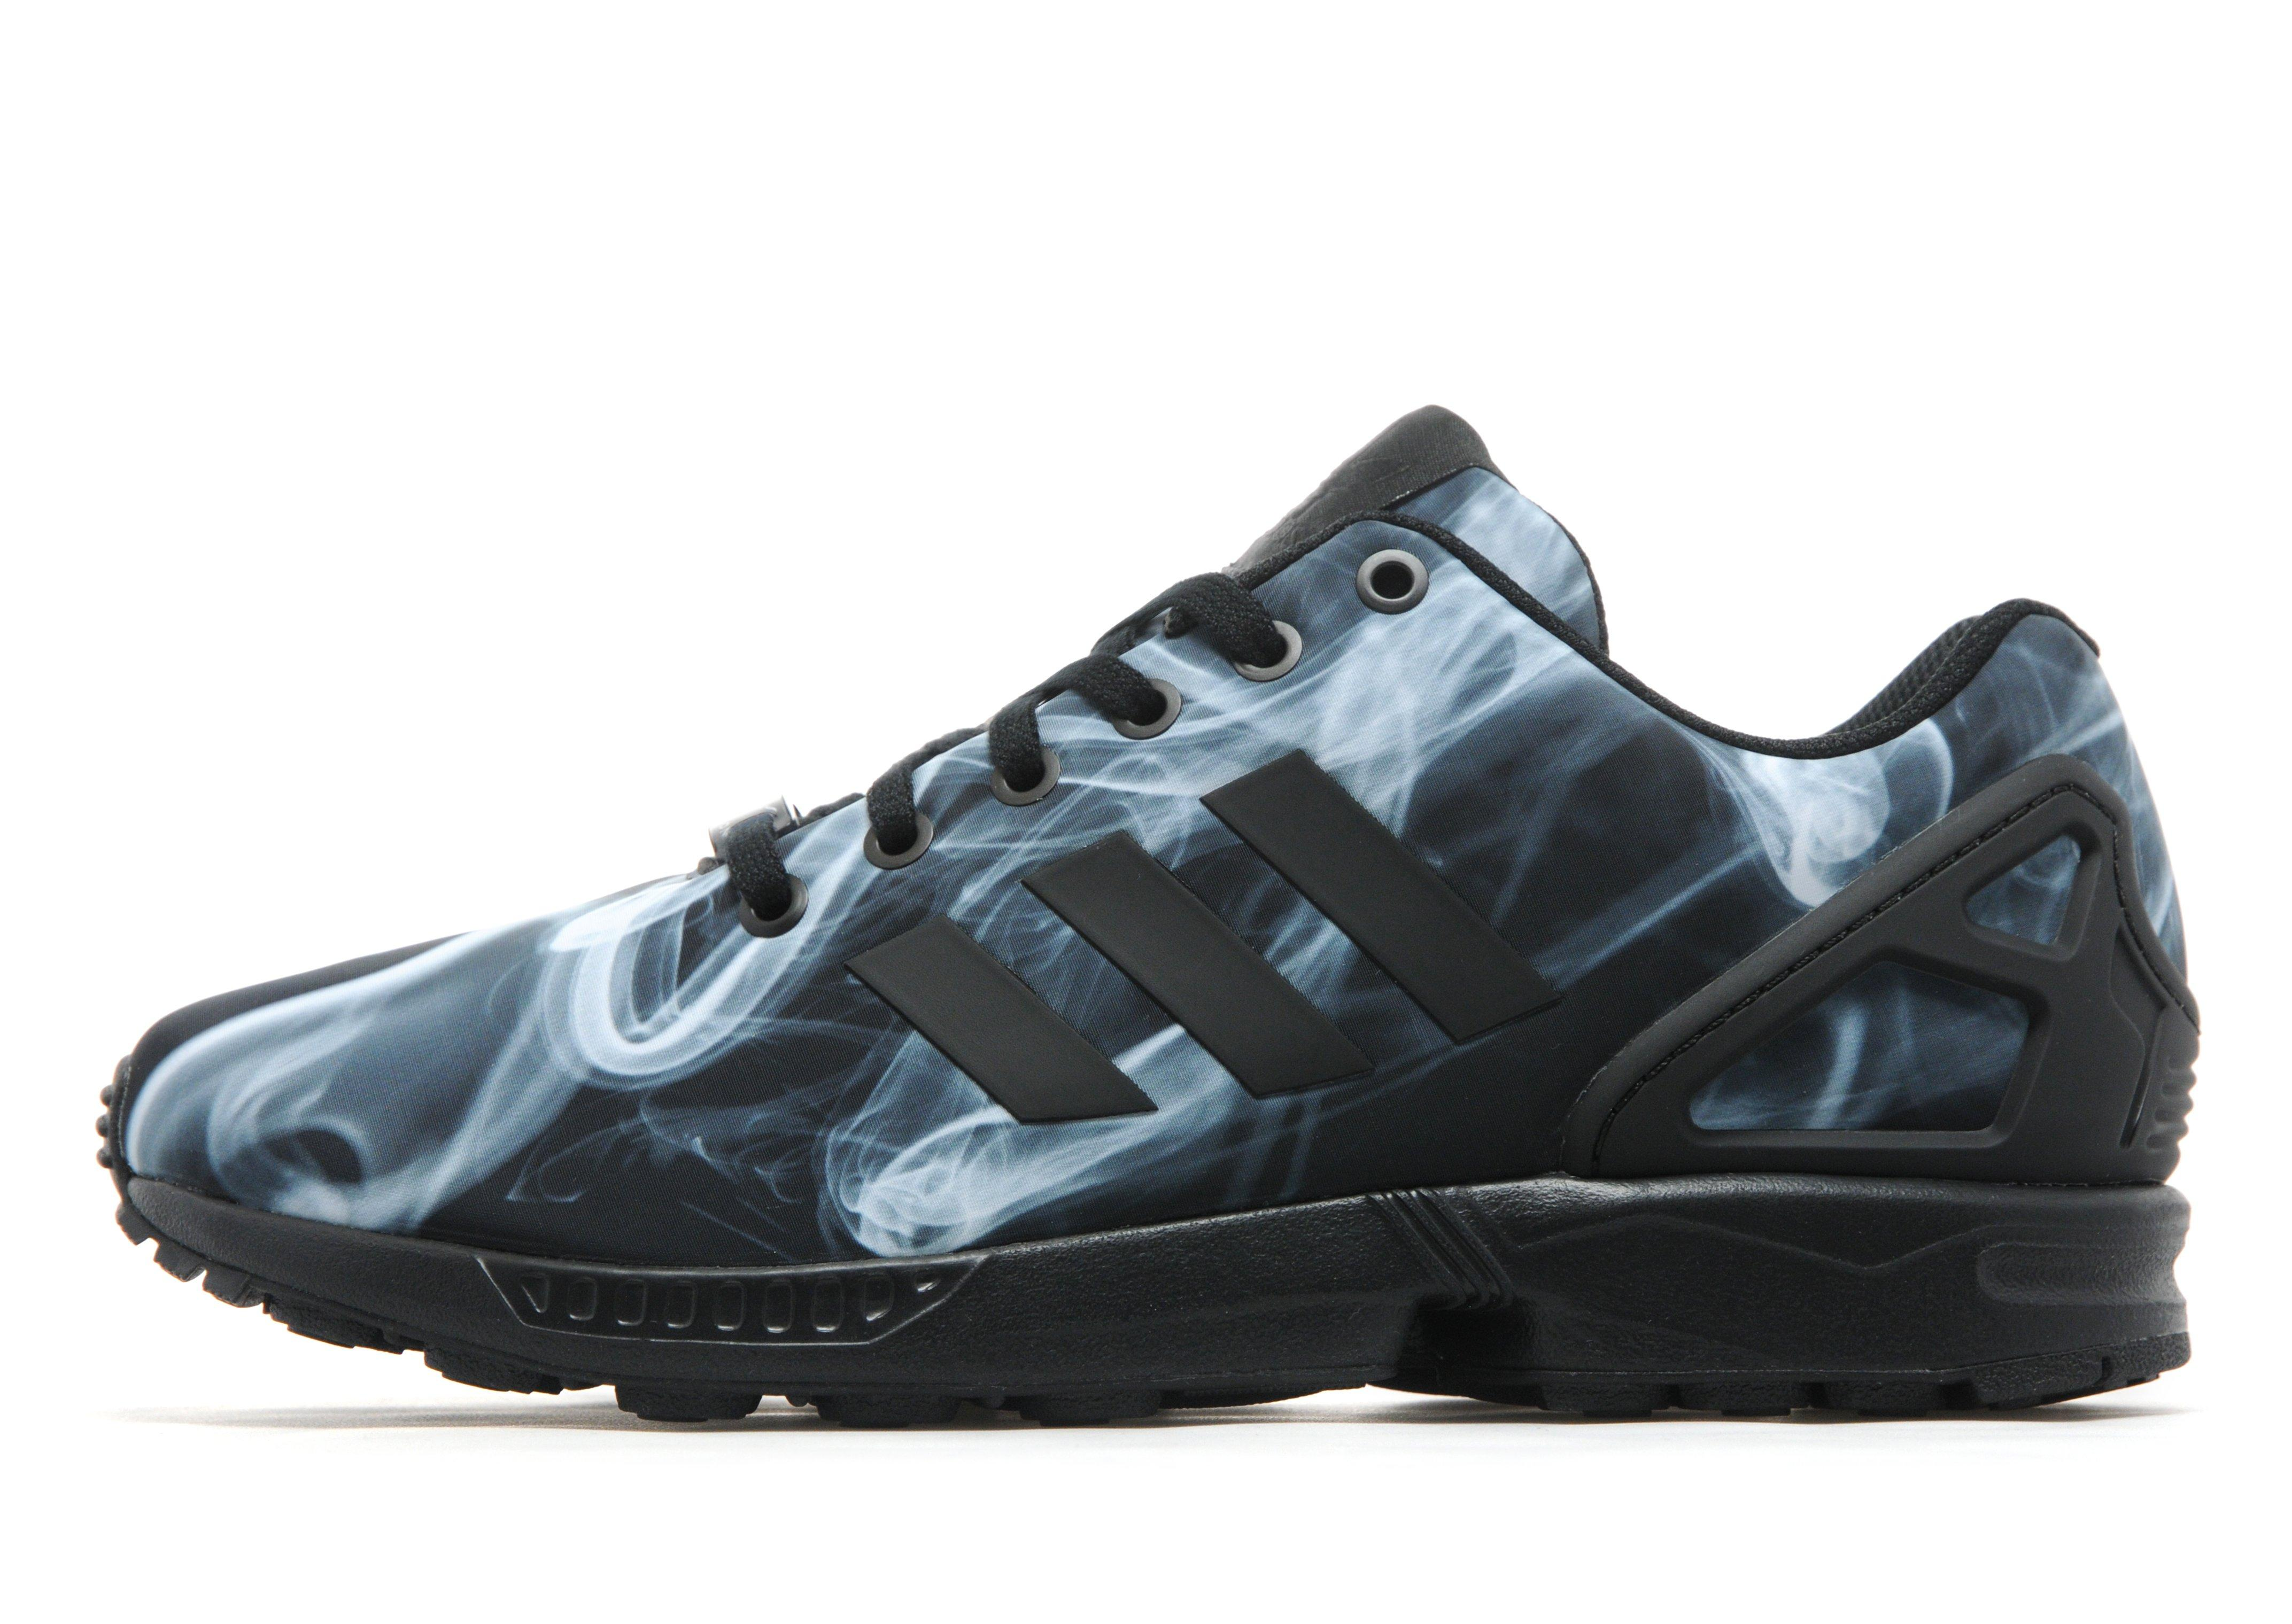 Adidas Zx Flux Size 15